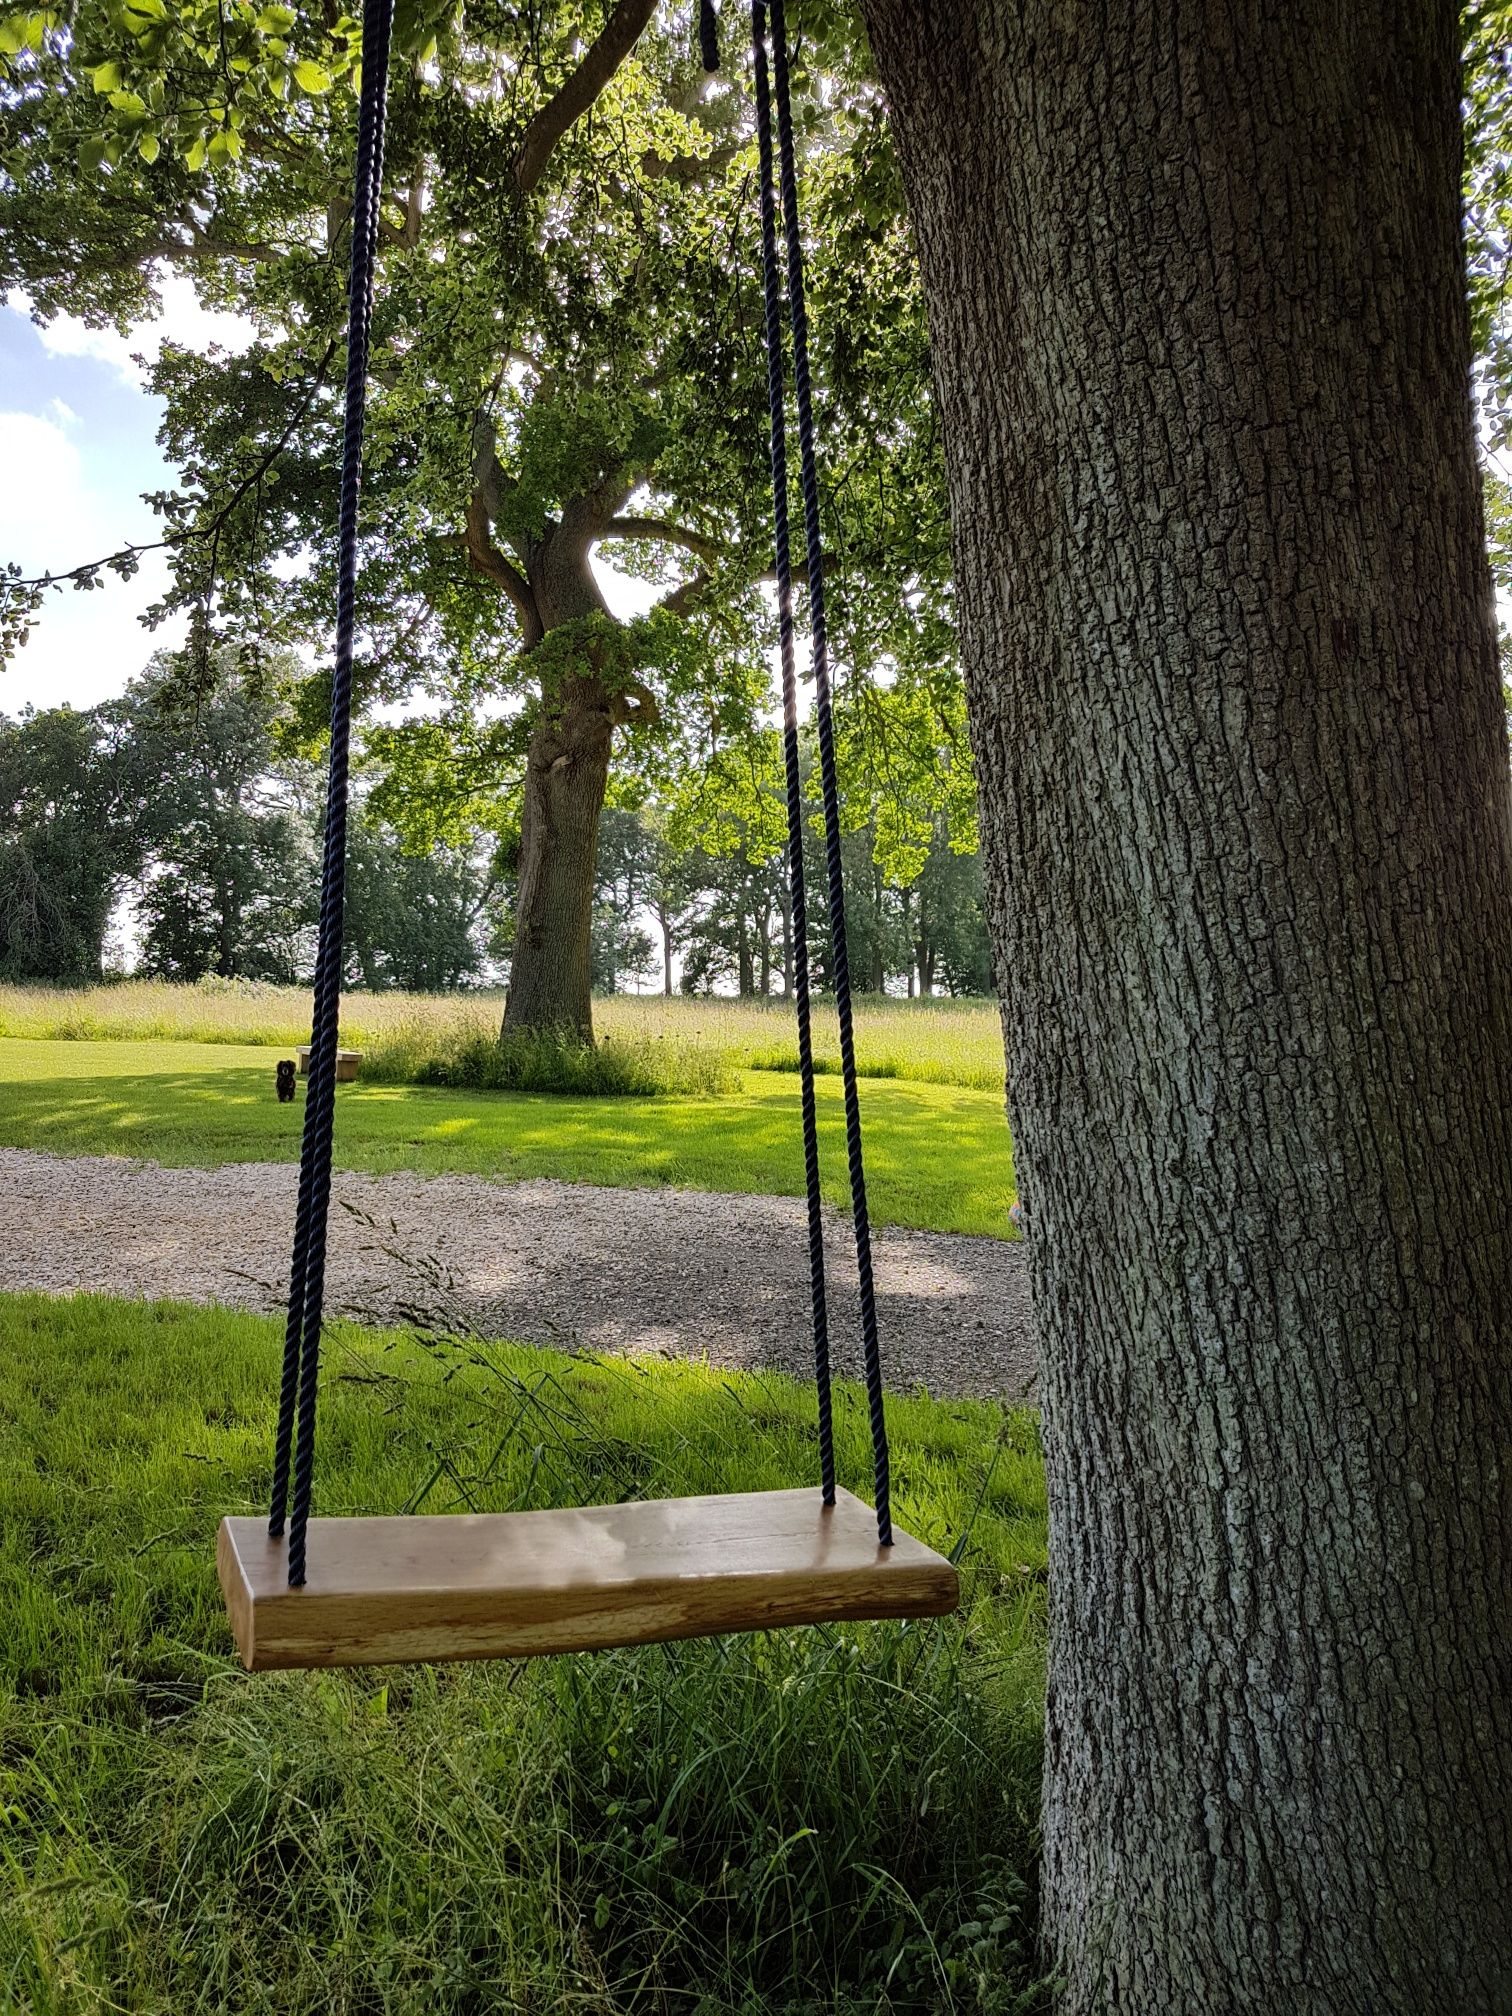 Handmade Swing Seat Using Natural Shaped Oak And Coloured Ropes